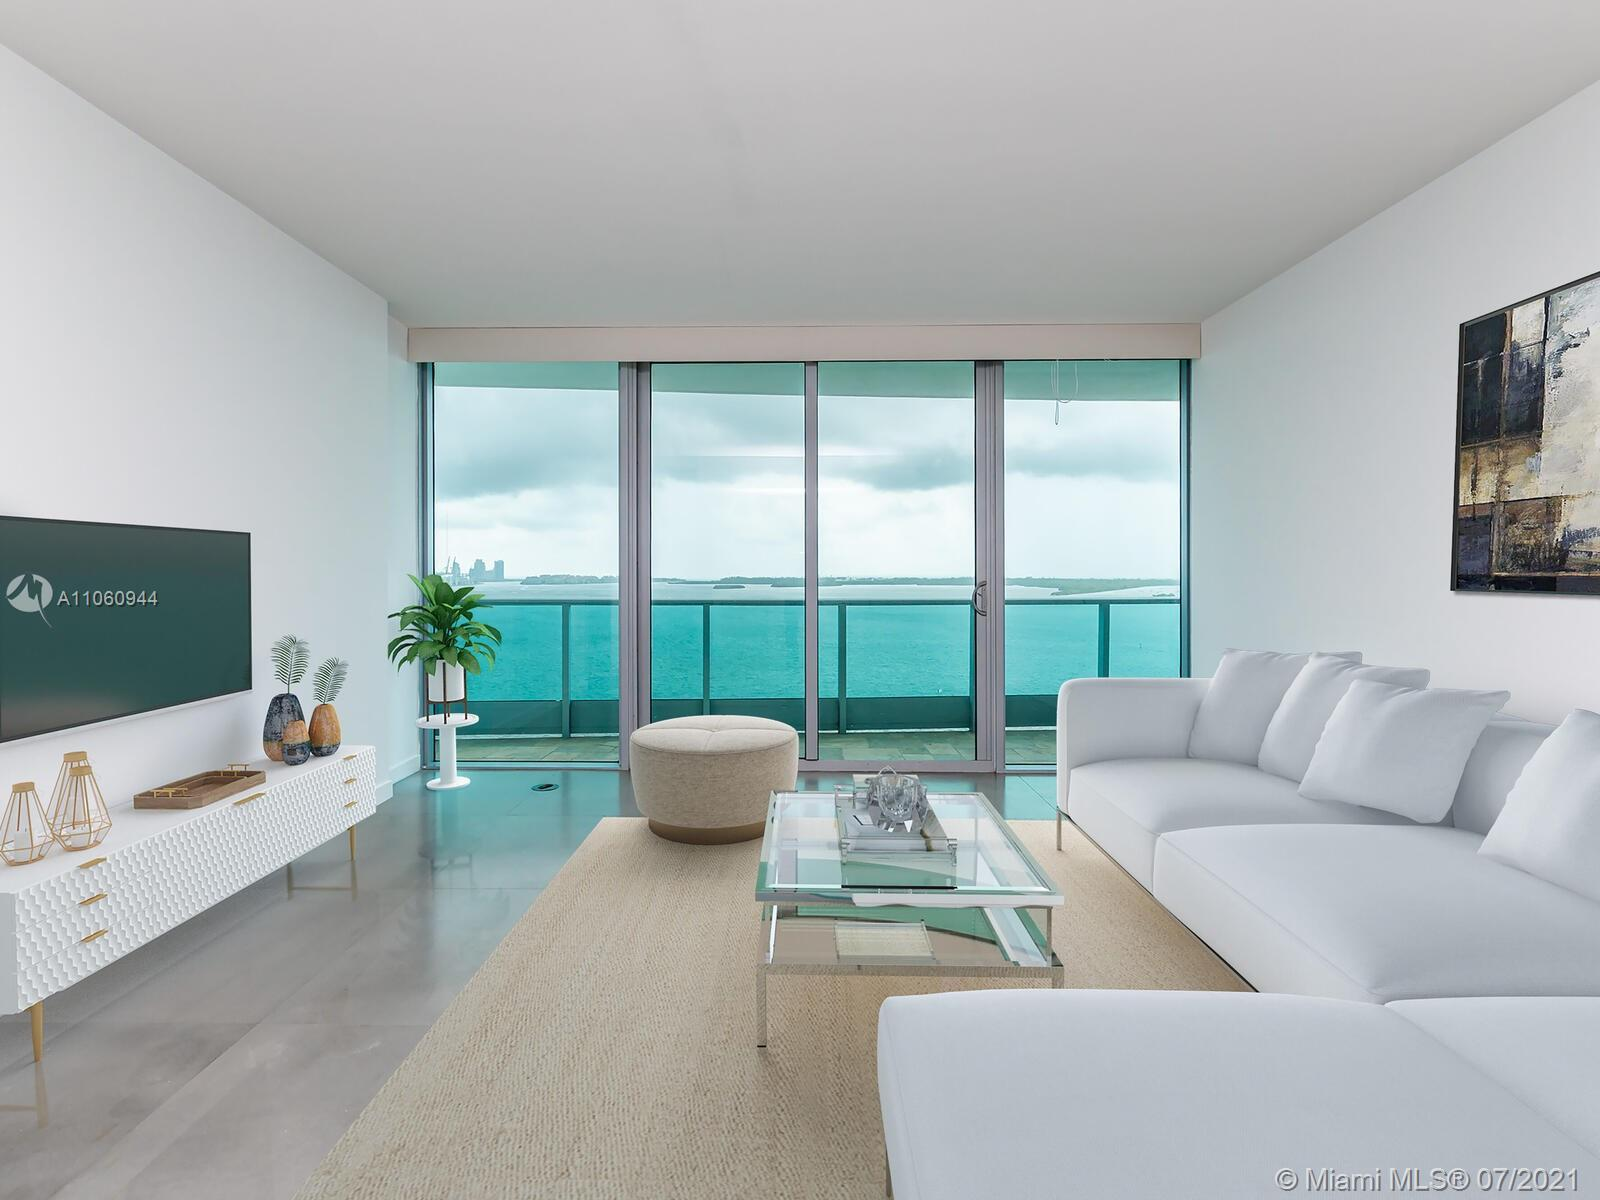 Enjoy spectacular water views from this 2bed,3bath +DEN unit with expansive balcony overlooking the